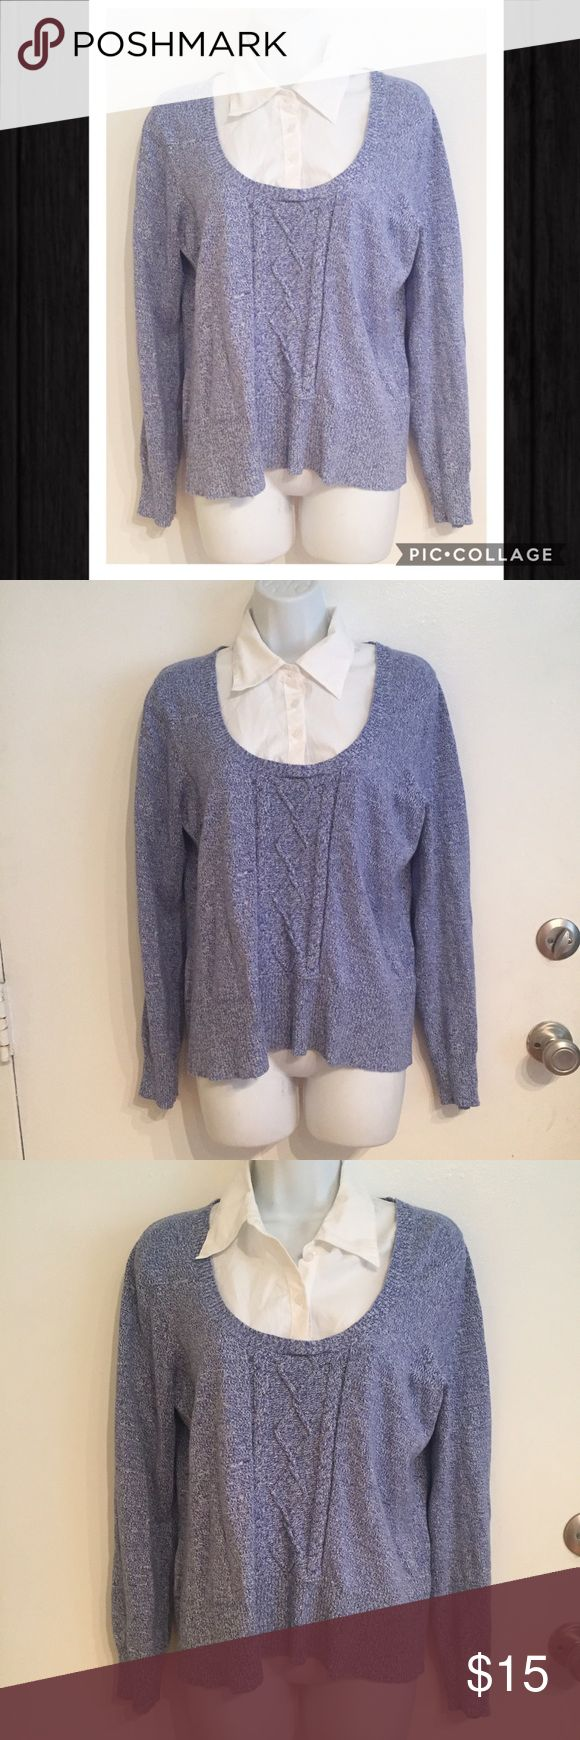 Brina & Em Faux Layered Collar Sweater Brina & Em Faux Layered Button Up collared shirt under a blue knit sweater. Perfect pop of color for a spring business casual look. Size large. #brinaem #layered #fauxlayered #buttonup #sweater #shirt #blue #white #collared #businesscasual #large #punkydoodle  No modeling Smoke free home I do discount bundles Brina & Em Sweaters